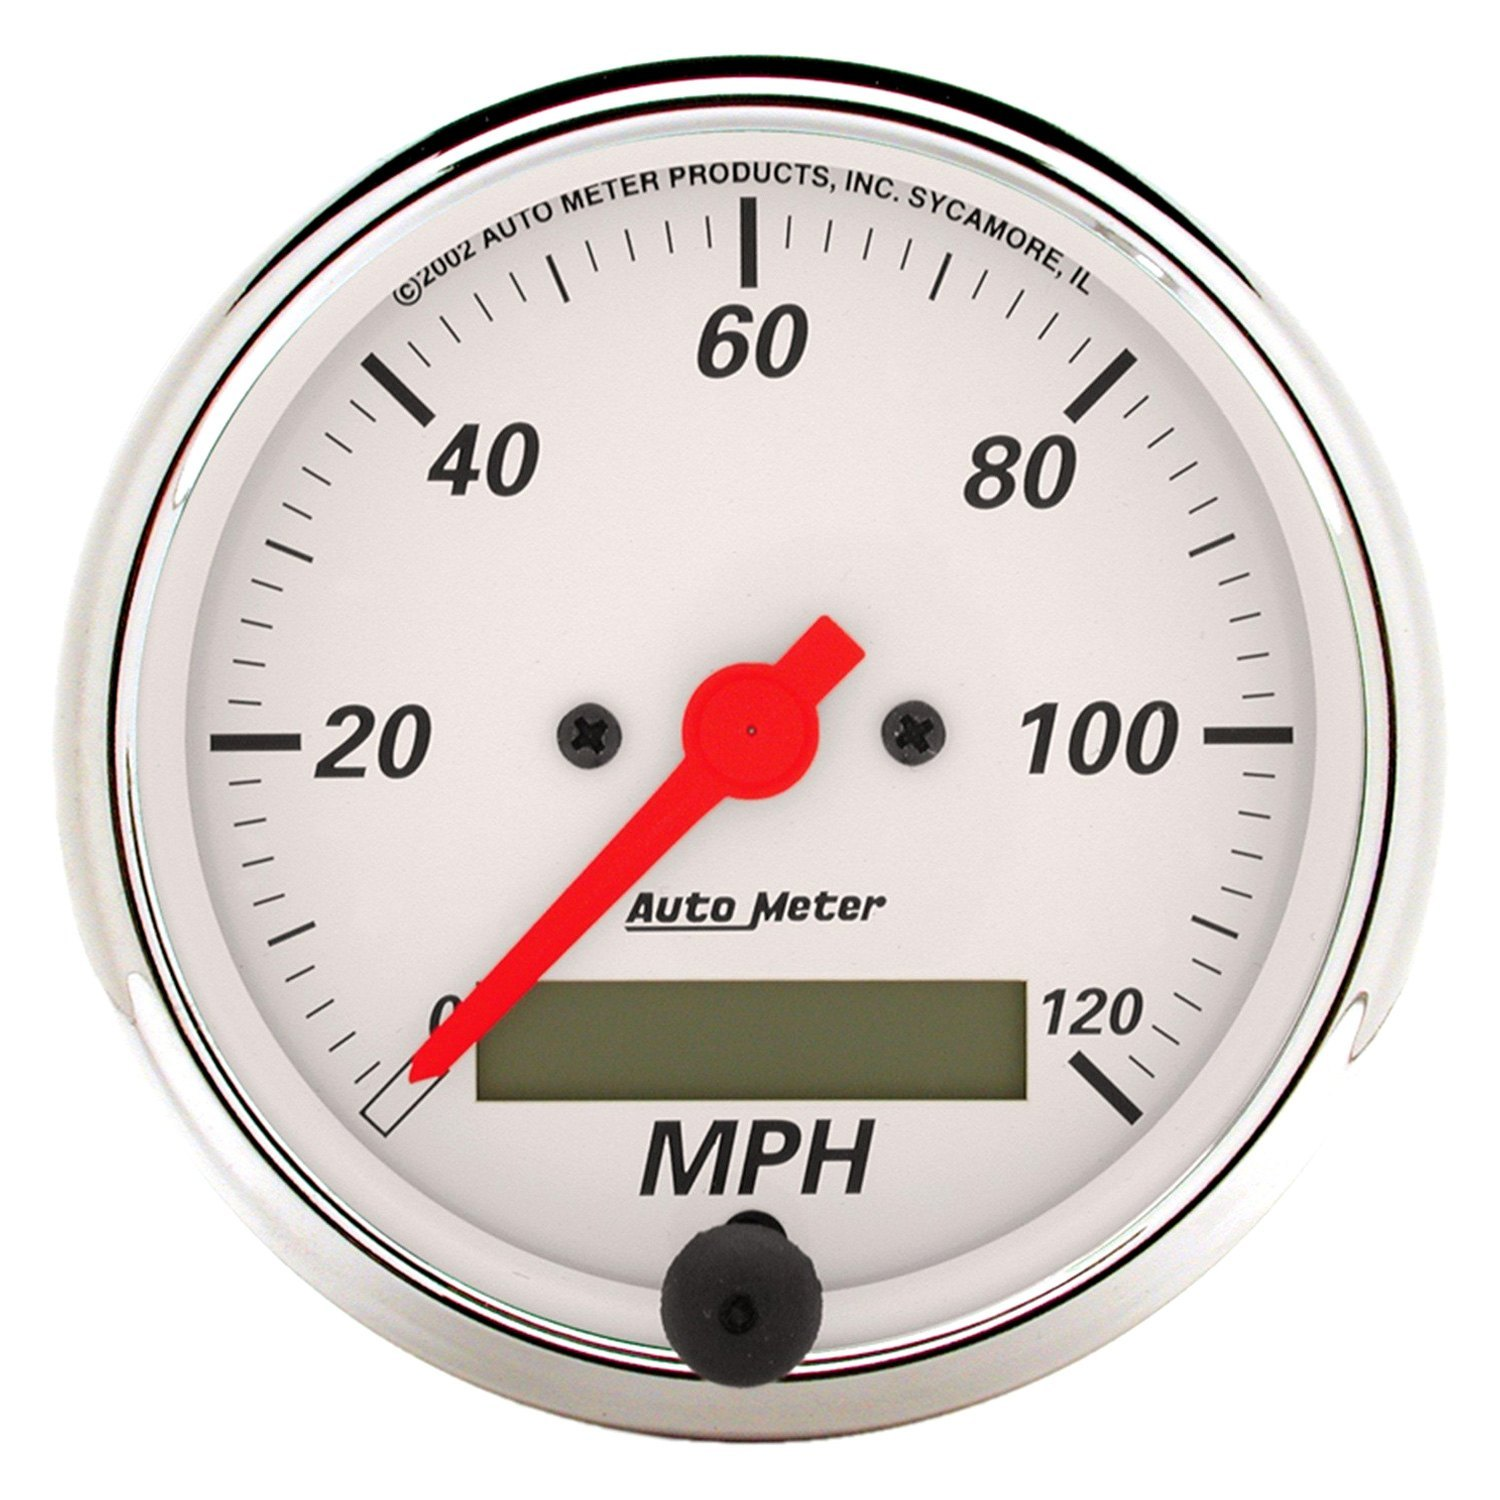 Auto Meter Electronic Speedometers : Auto meter arctic white™ speedometer in dash gauge